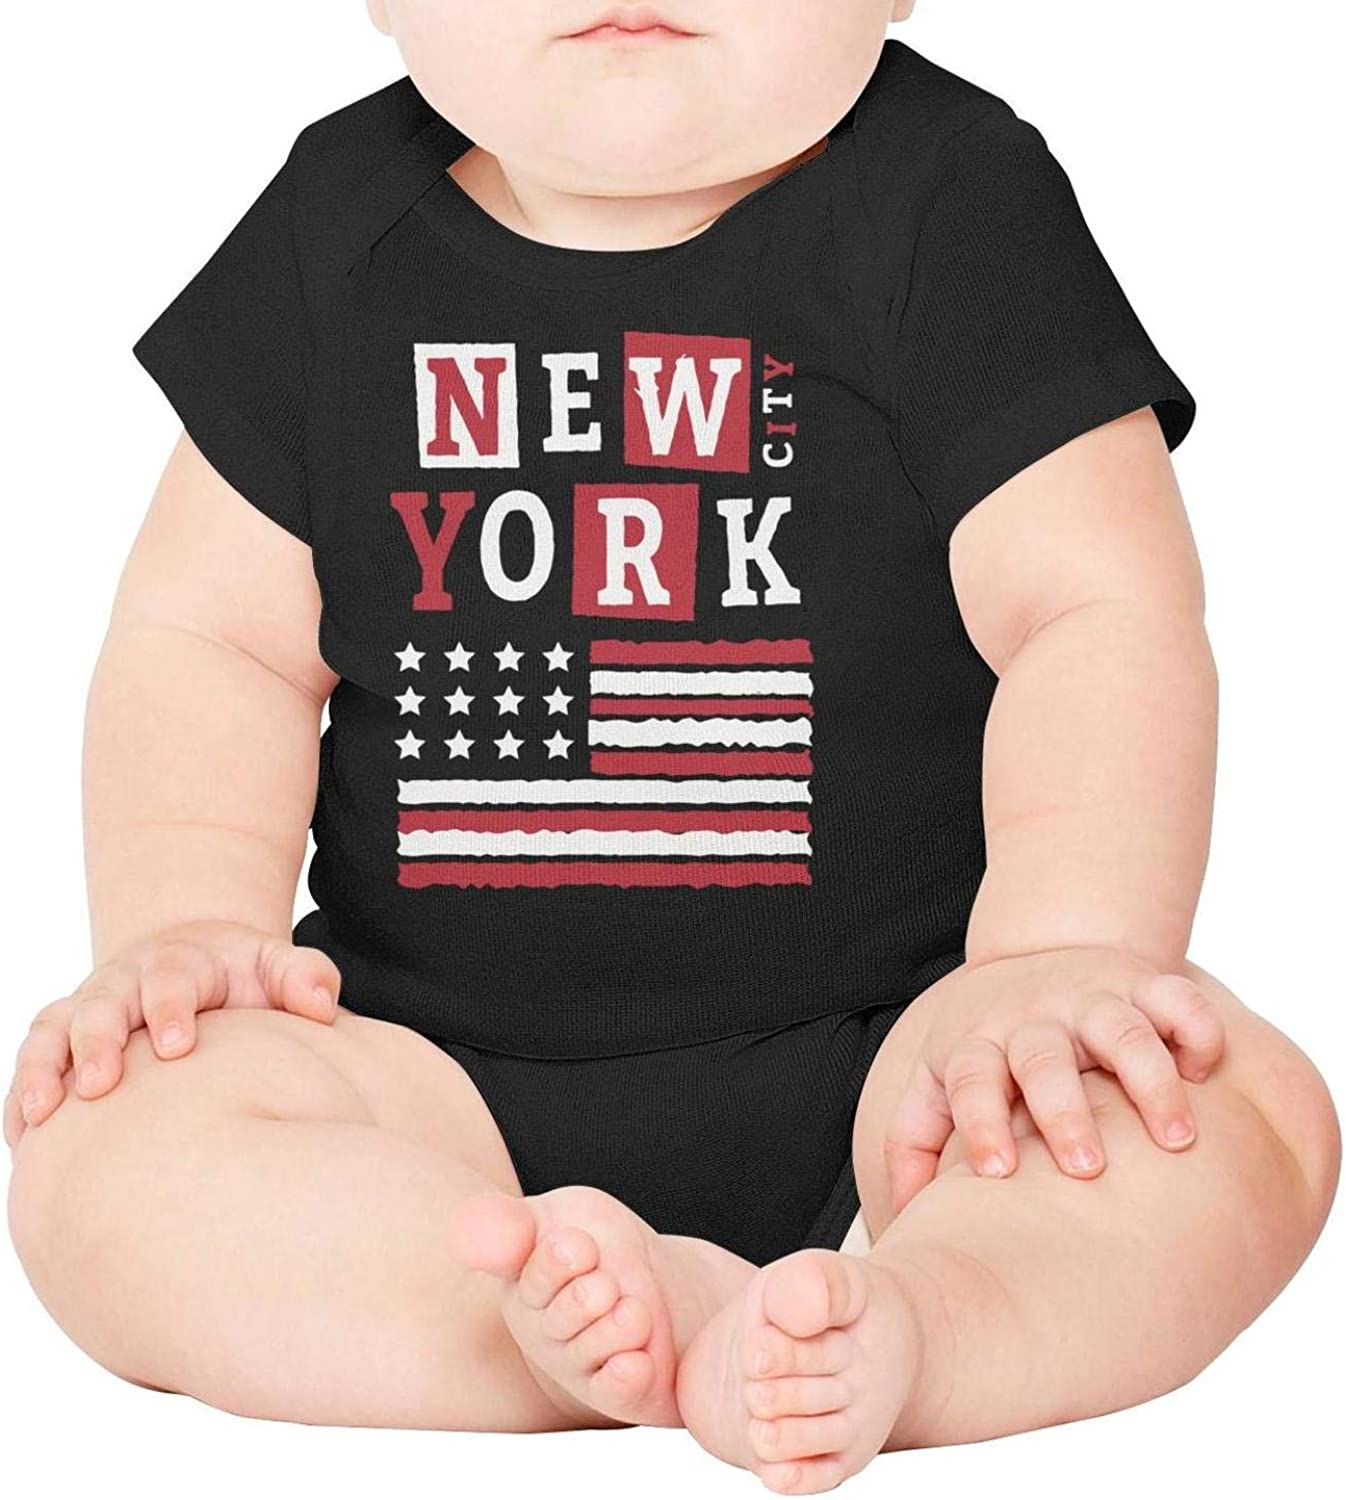 Amazon Com Popbelle New York Ny City Newborn Baby Onesies Baby Onesie Black Clothing Gifts One Piece Cotton Short Sleeve Clothing